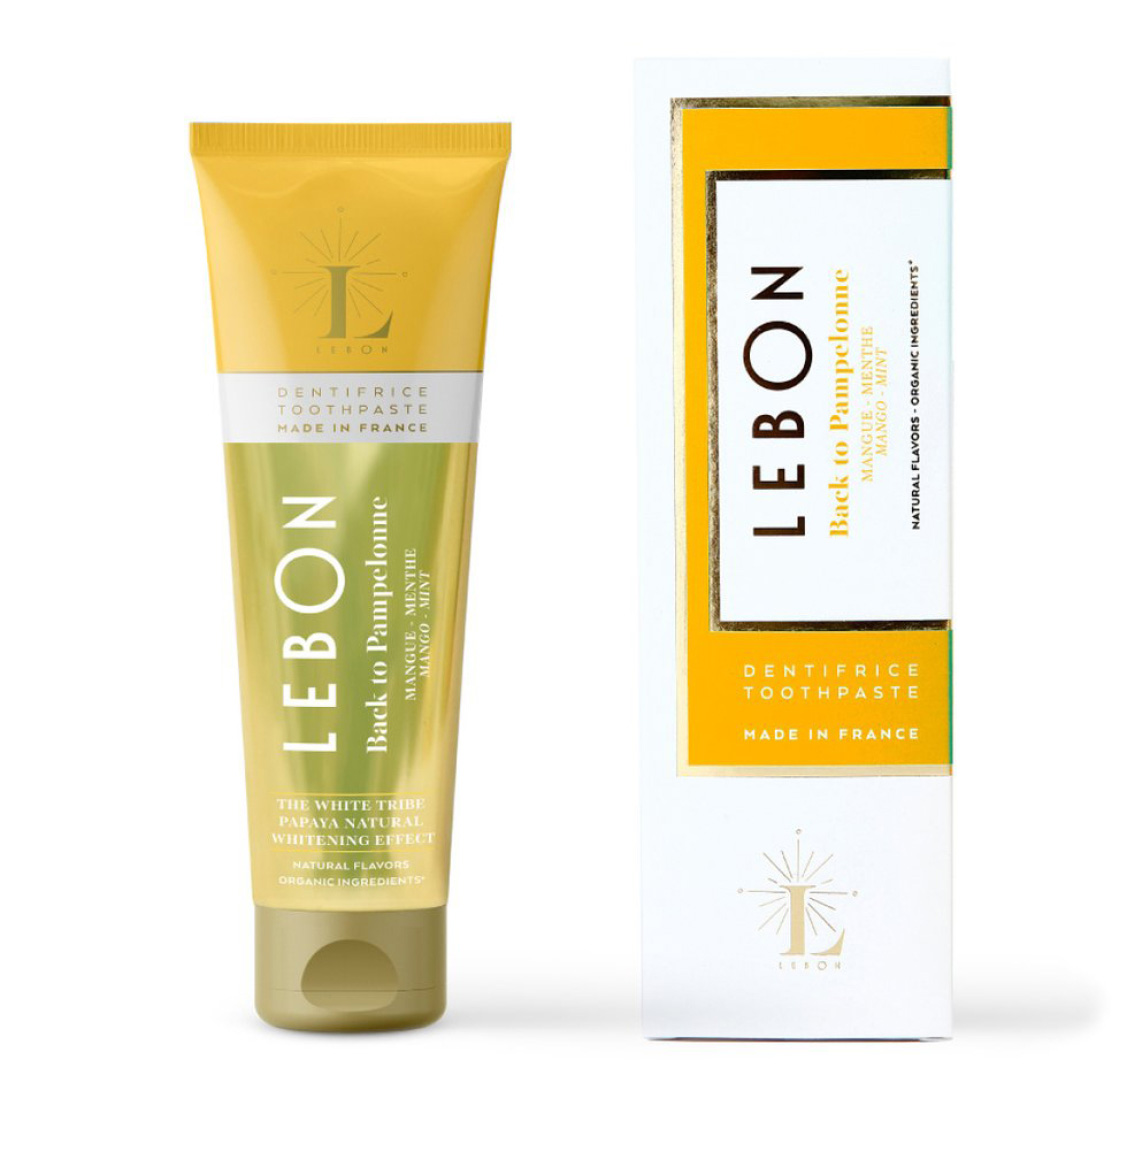 Lebon Mango Mint Toothpaste 75ml